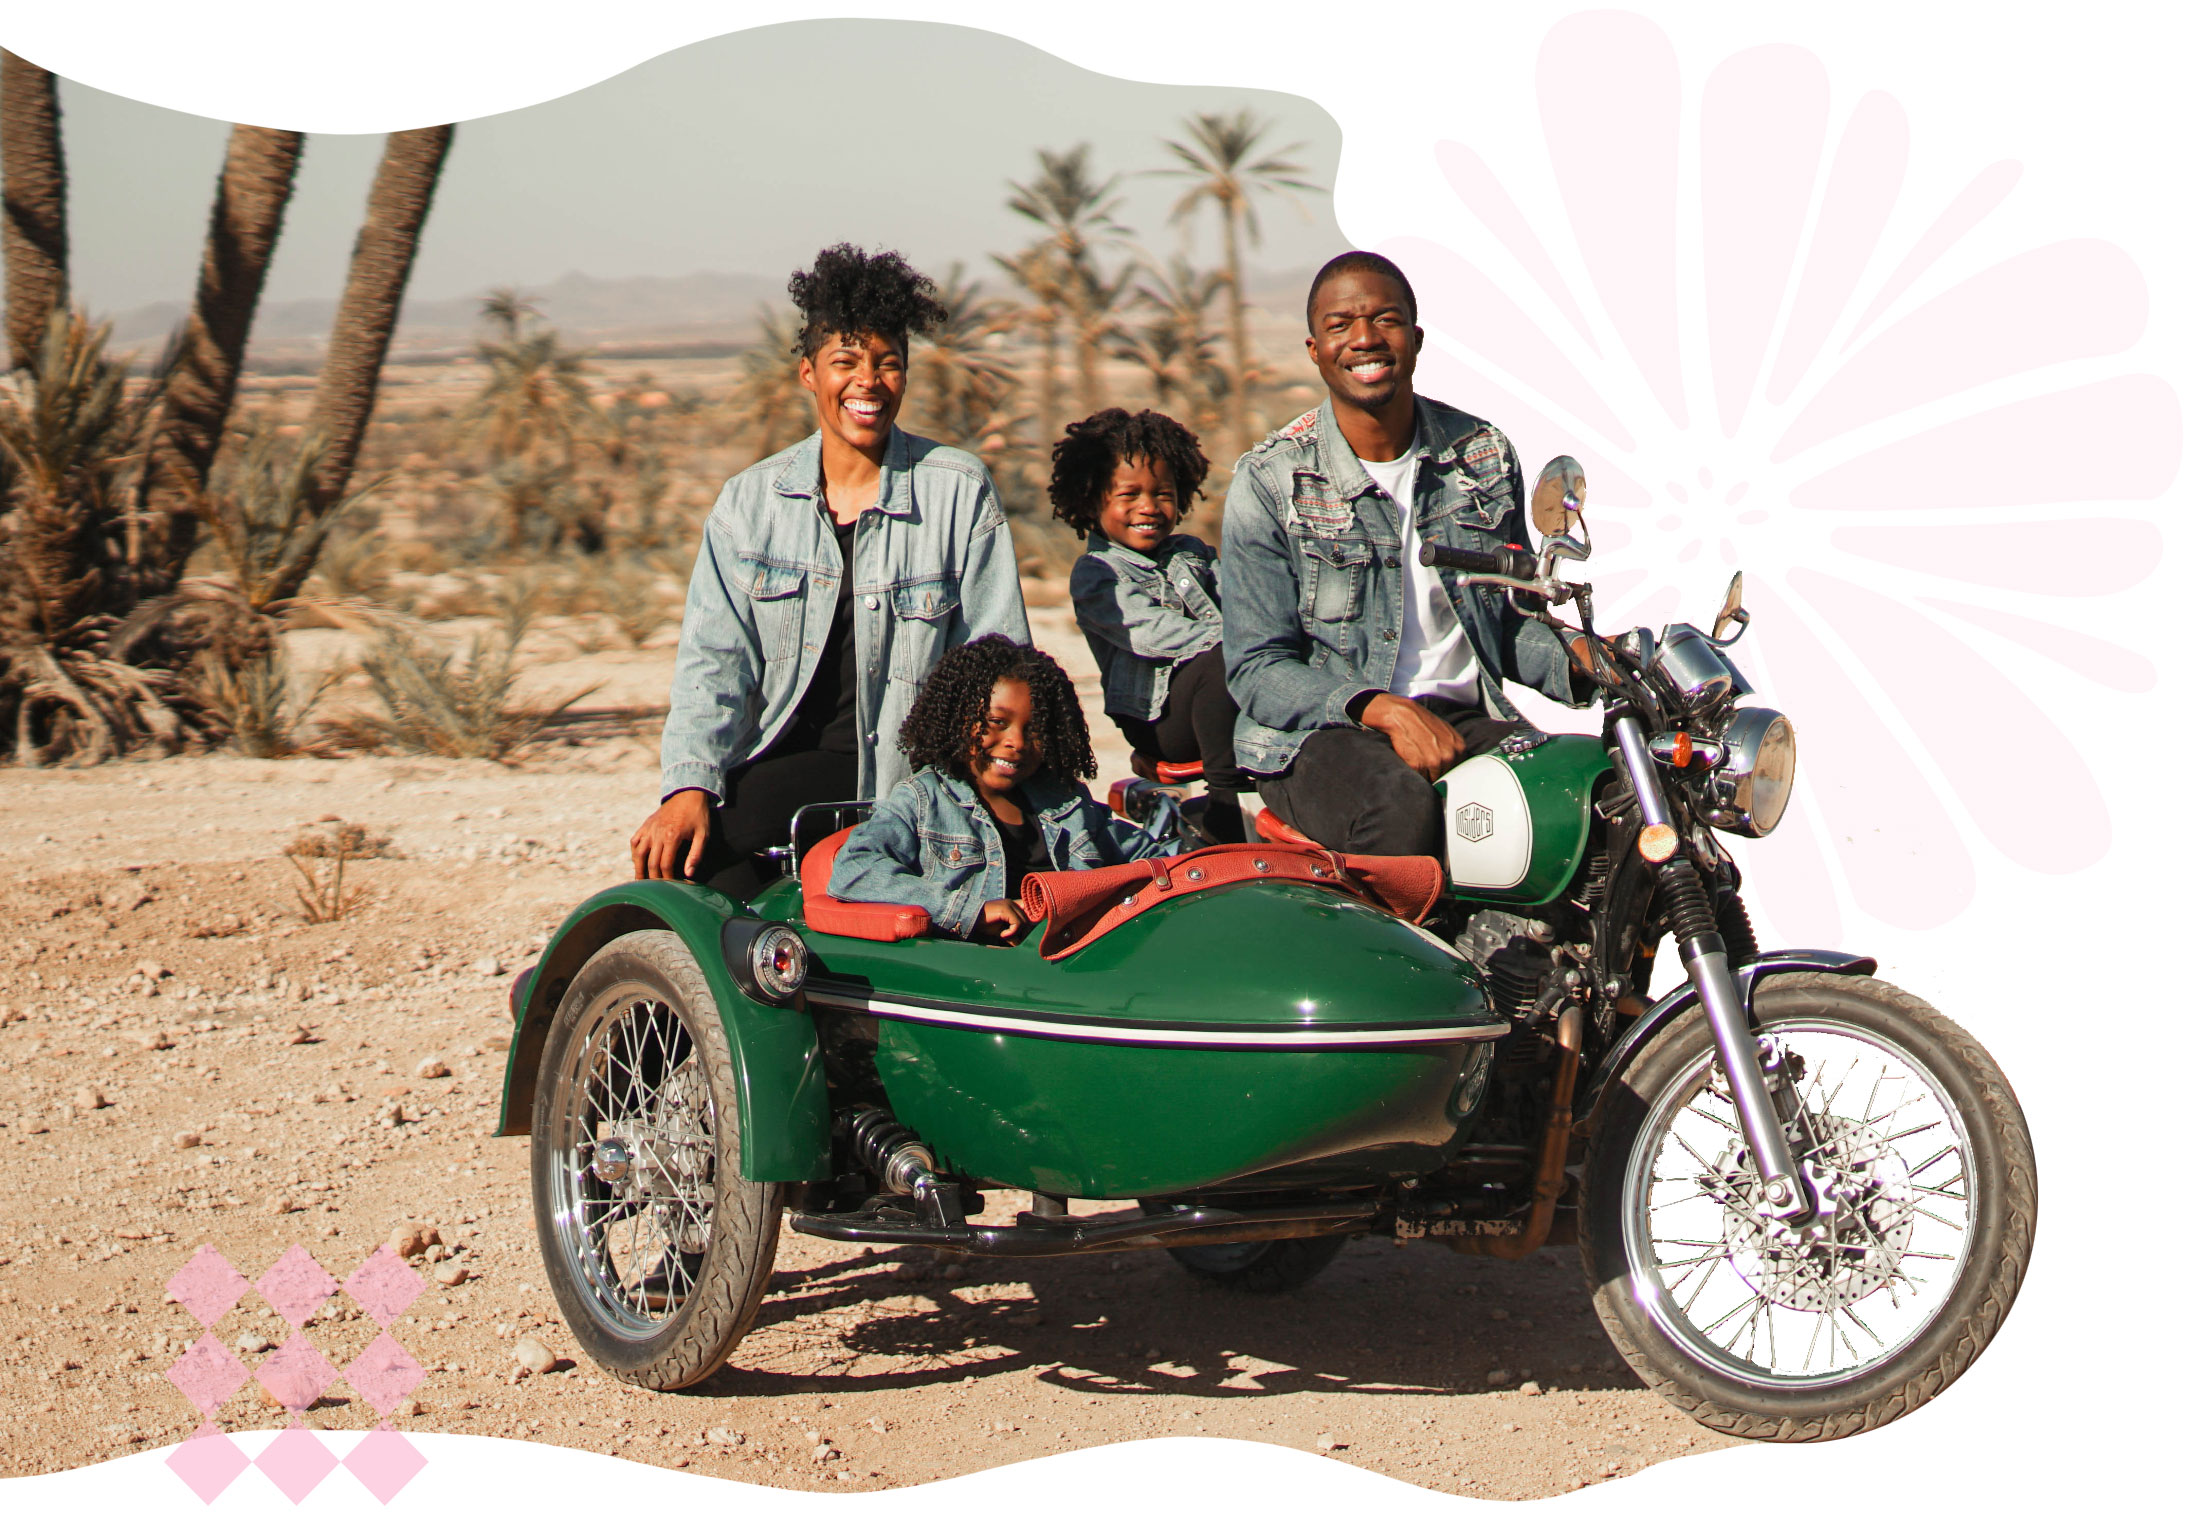 Hambrick's family picture riding a motorcycle with a sidecart for the kids!